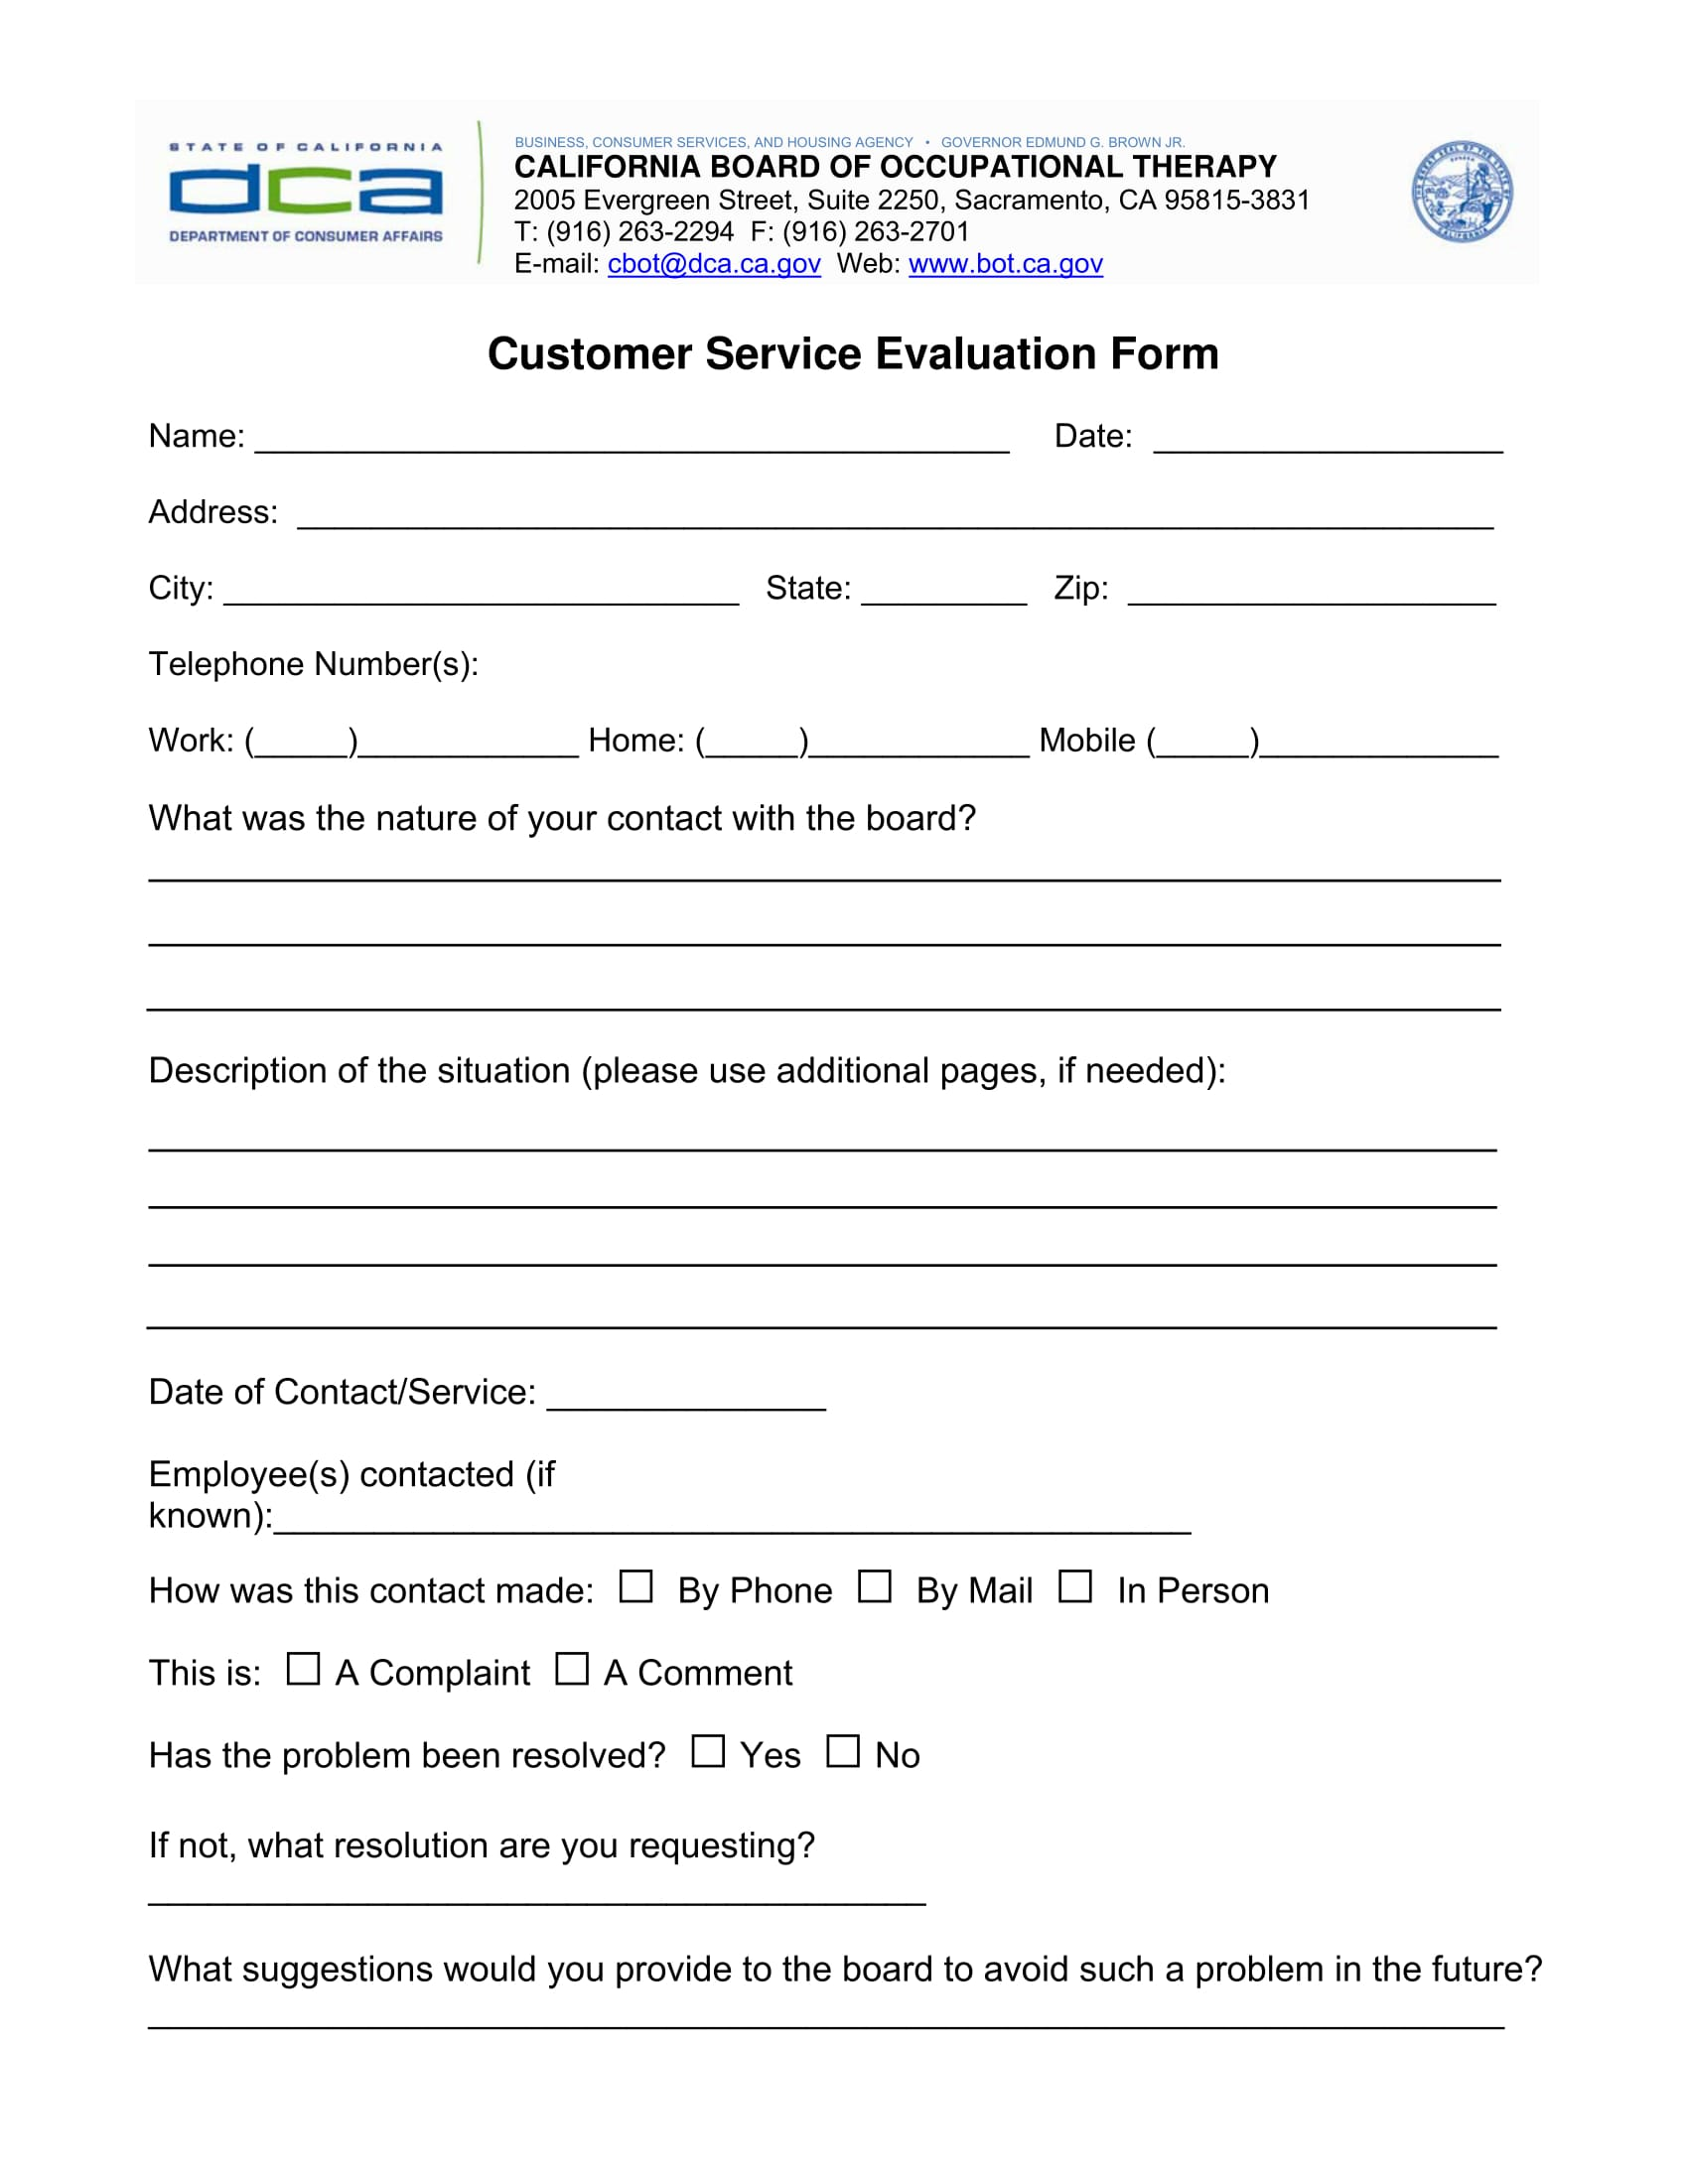 customer service evaluation form sample 1